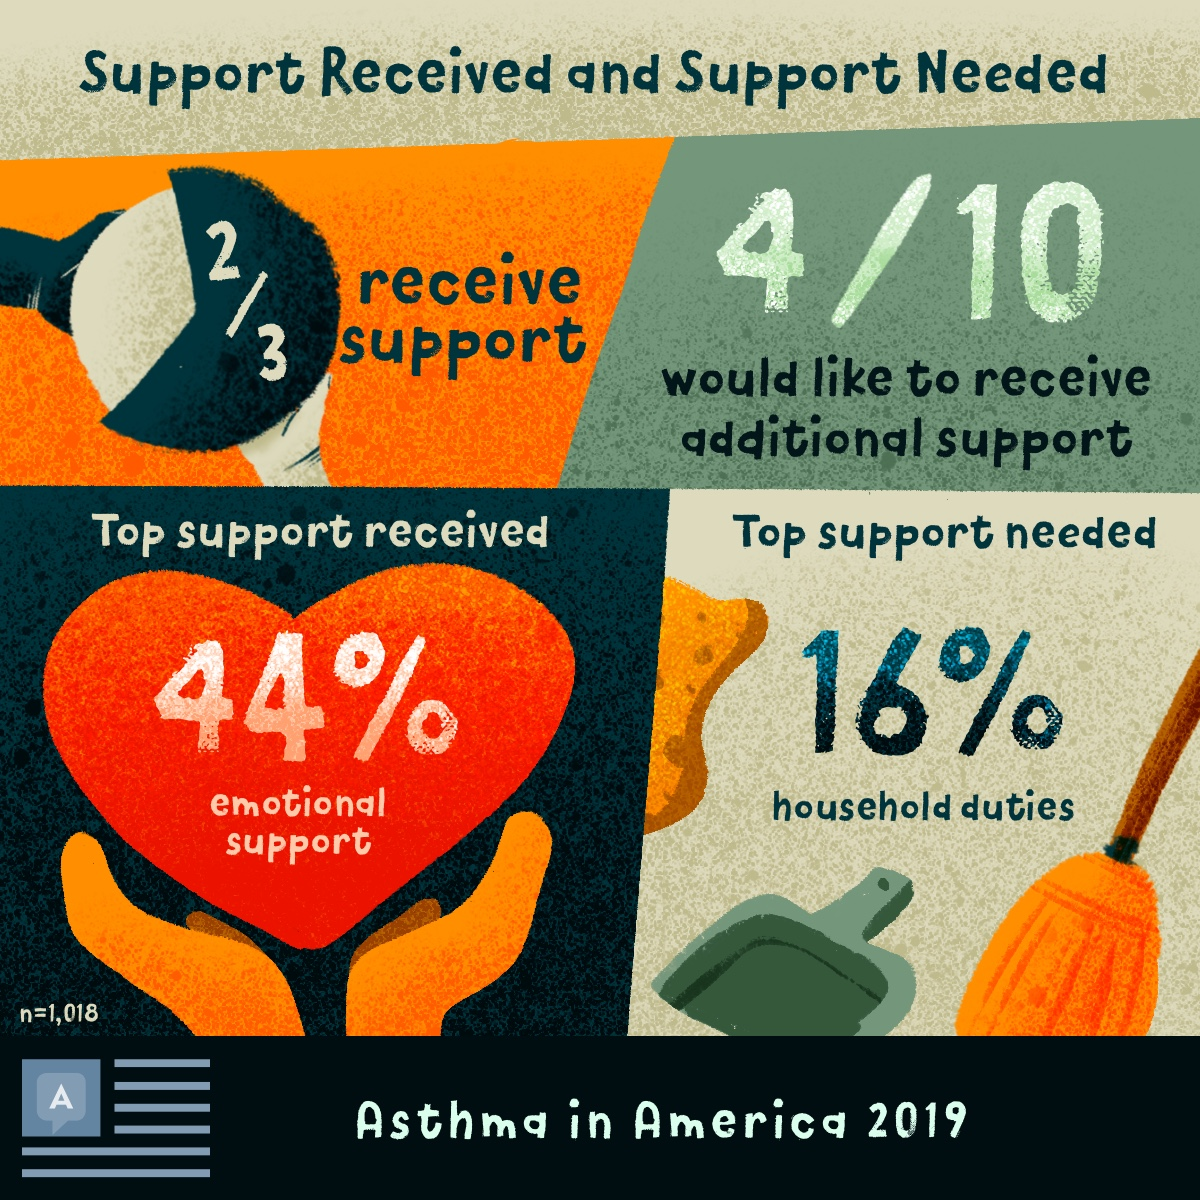 Two-thirds of people with asthma receive support. 44% receive emotional support, 16% need support with household duties.